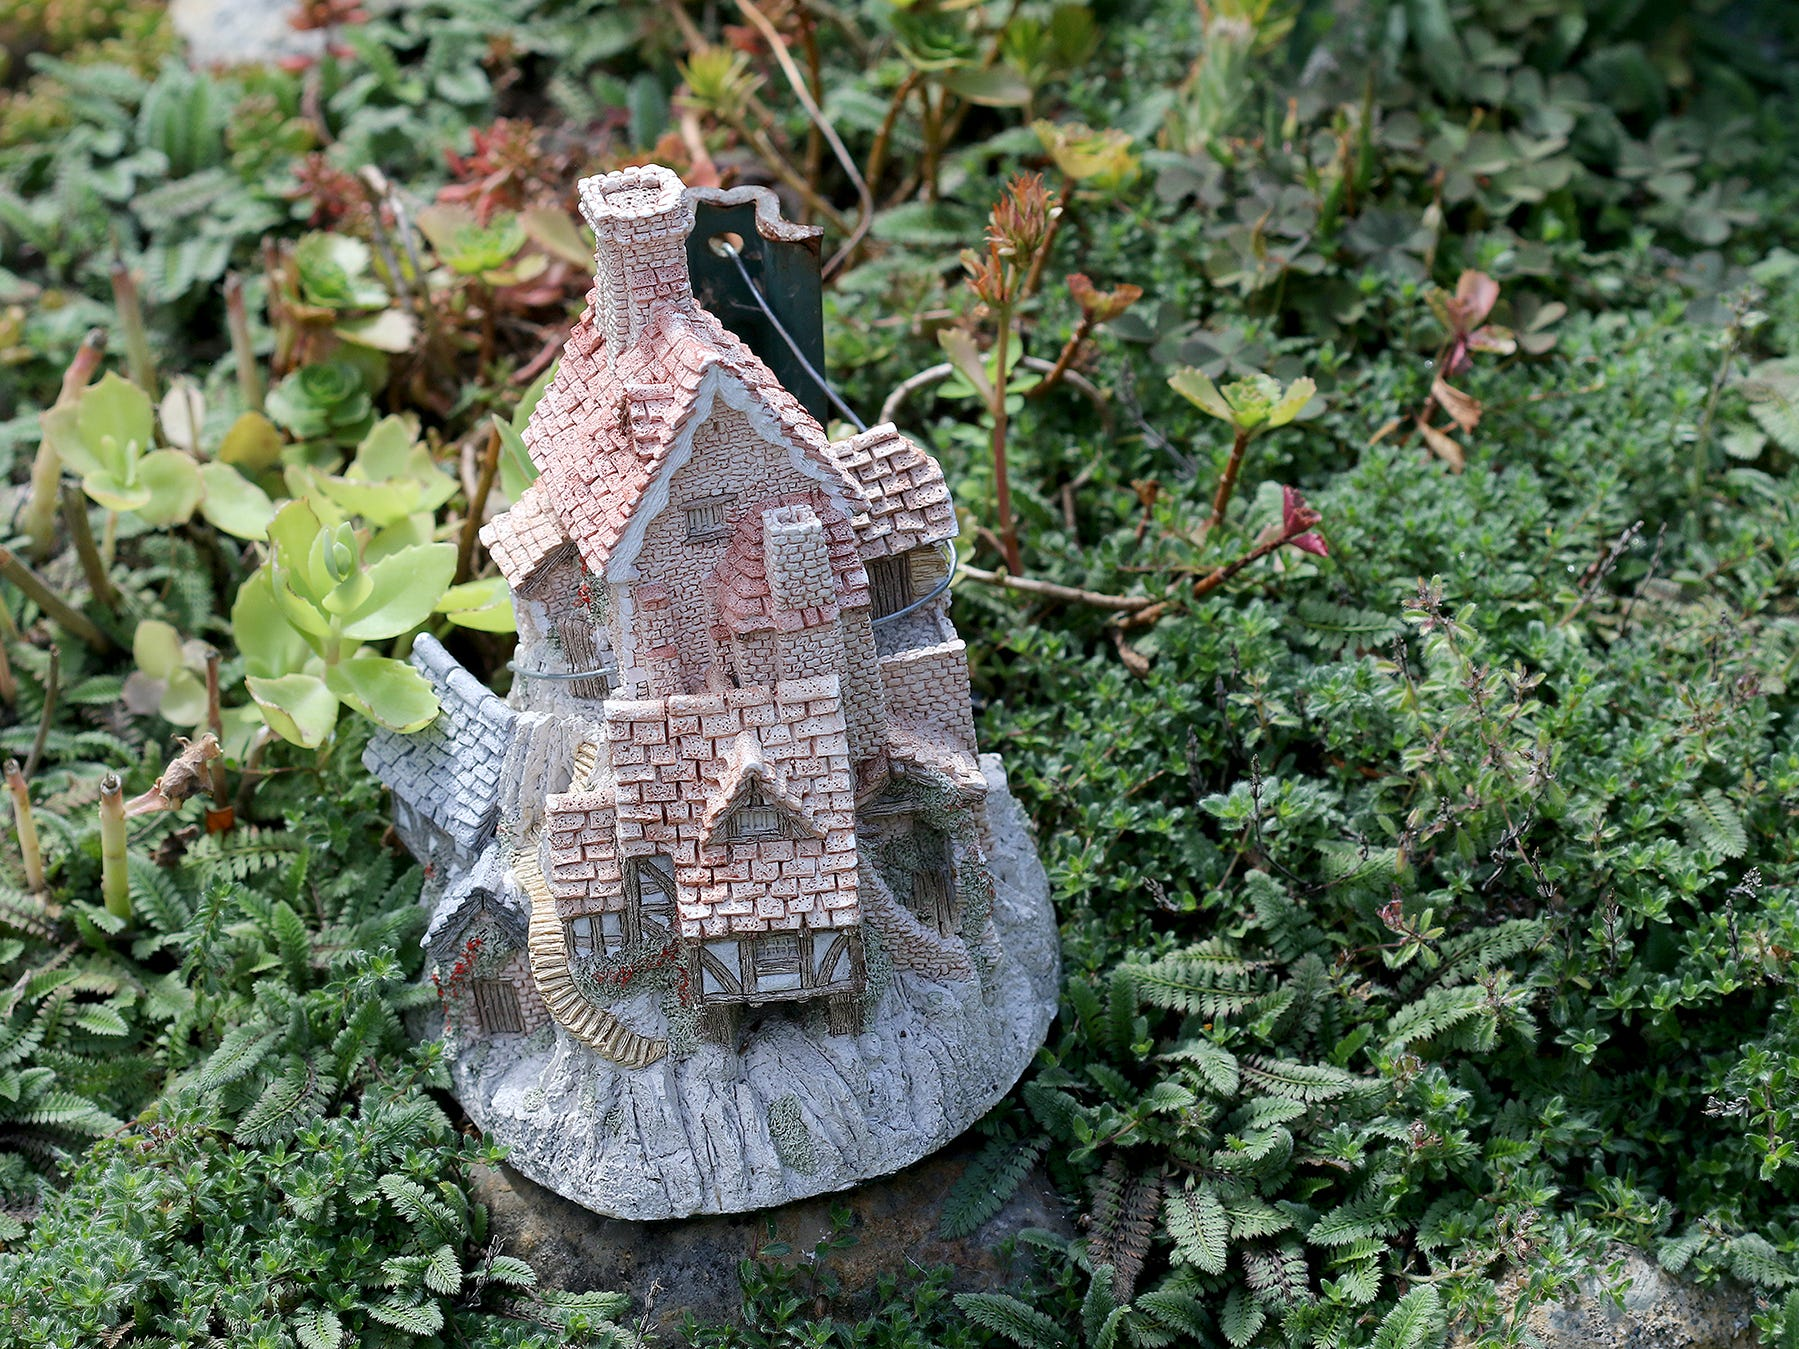 A fairy house on display for the 30th Anniversary celebration open house at Anna Smith Garden  on Saturday, August 4, 2018.